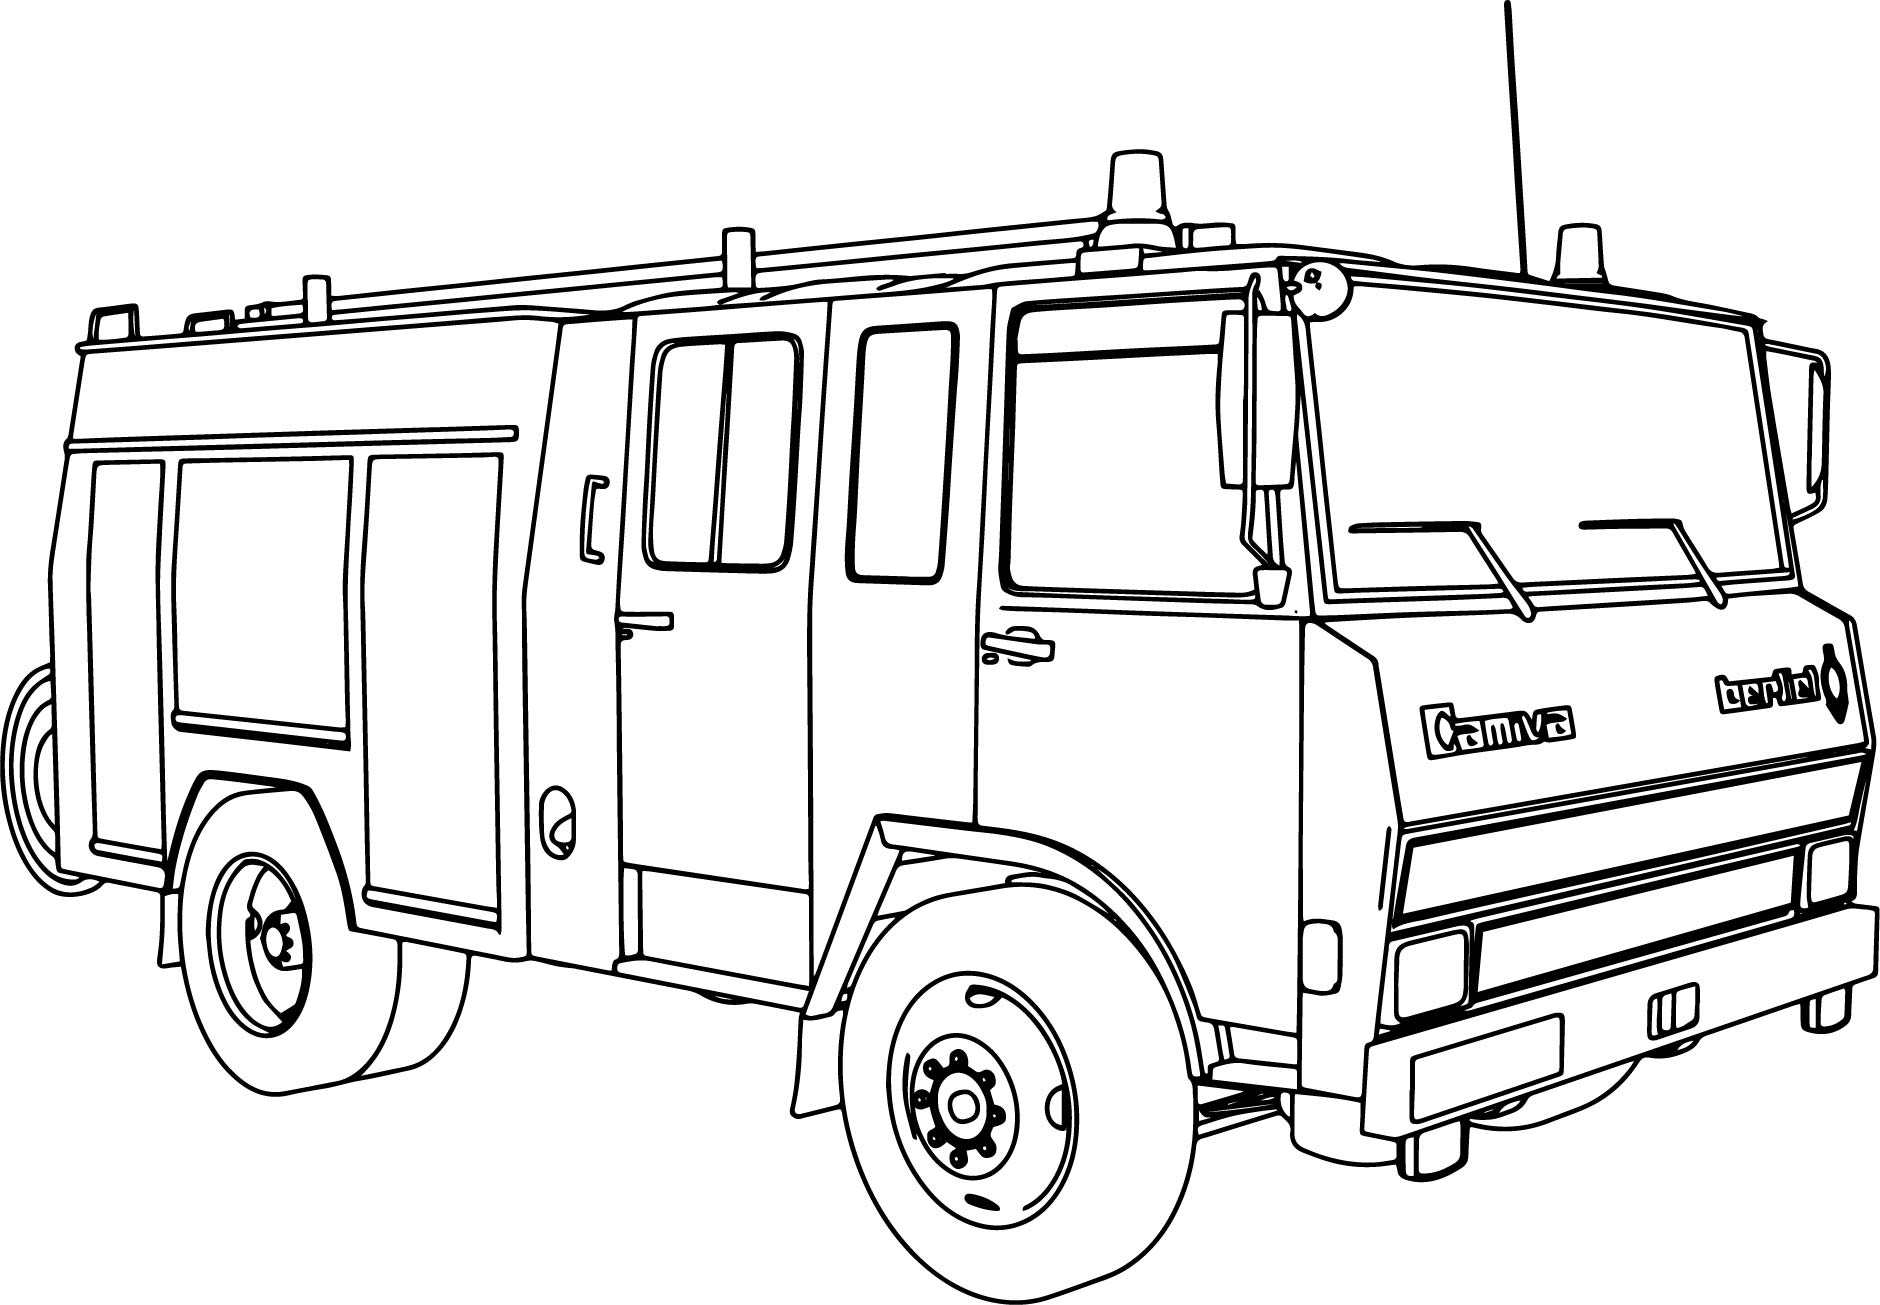 Easy Truck Drawing At Getdrawings